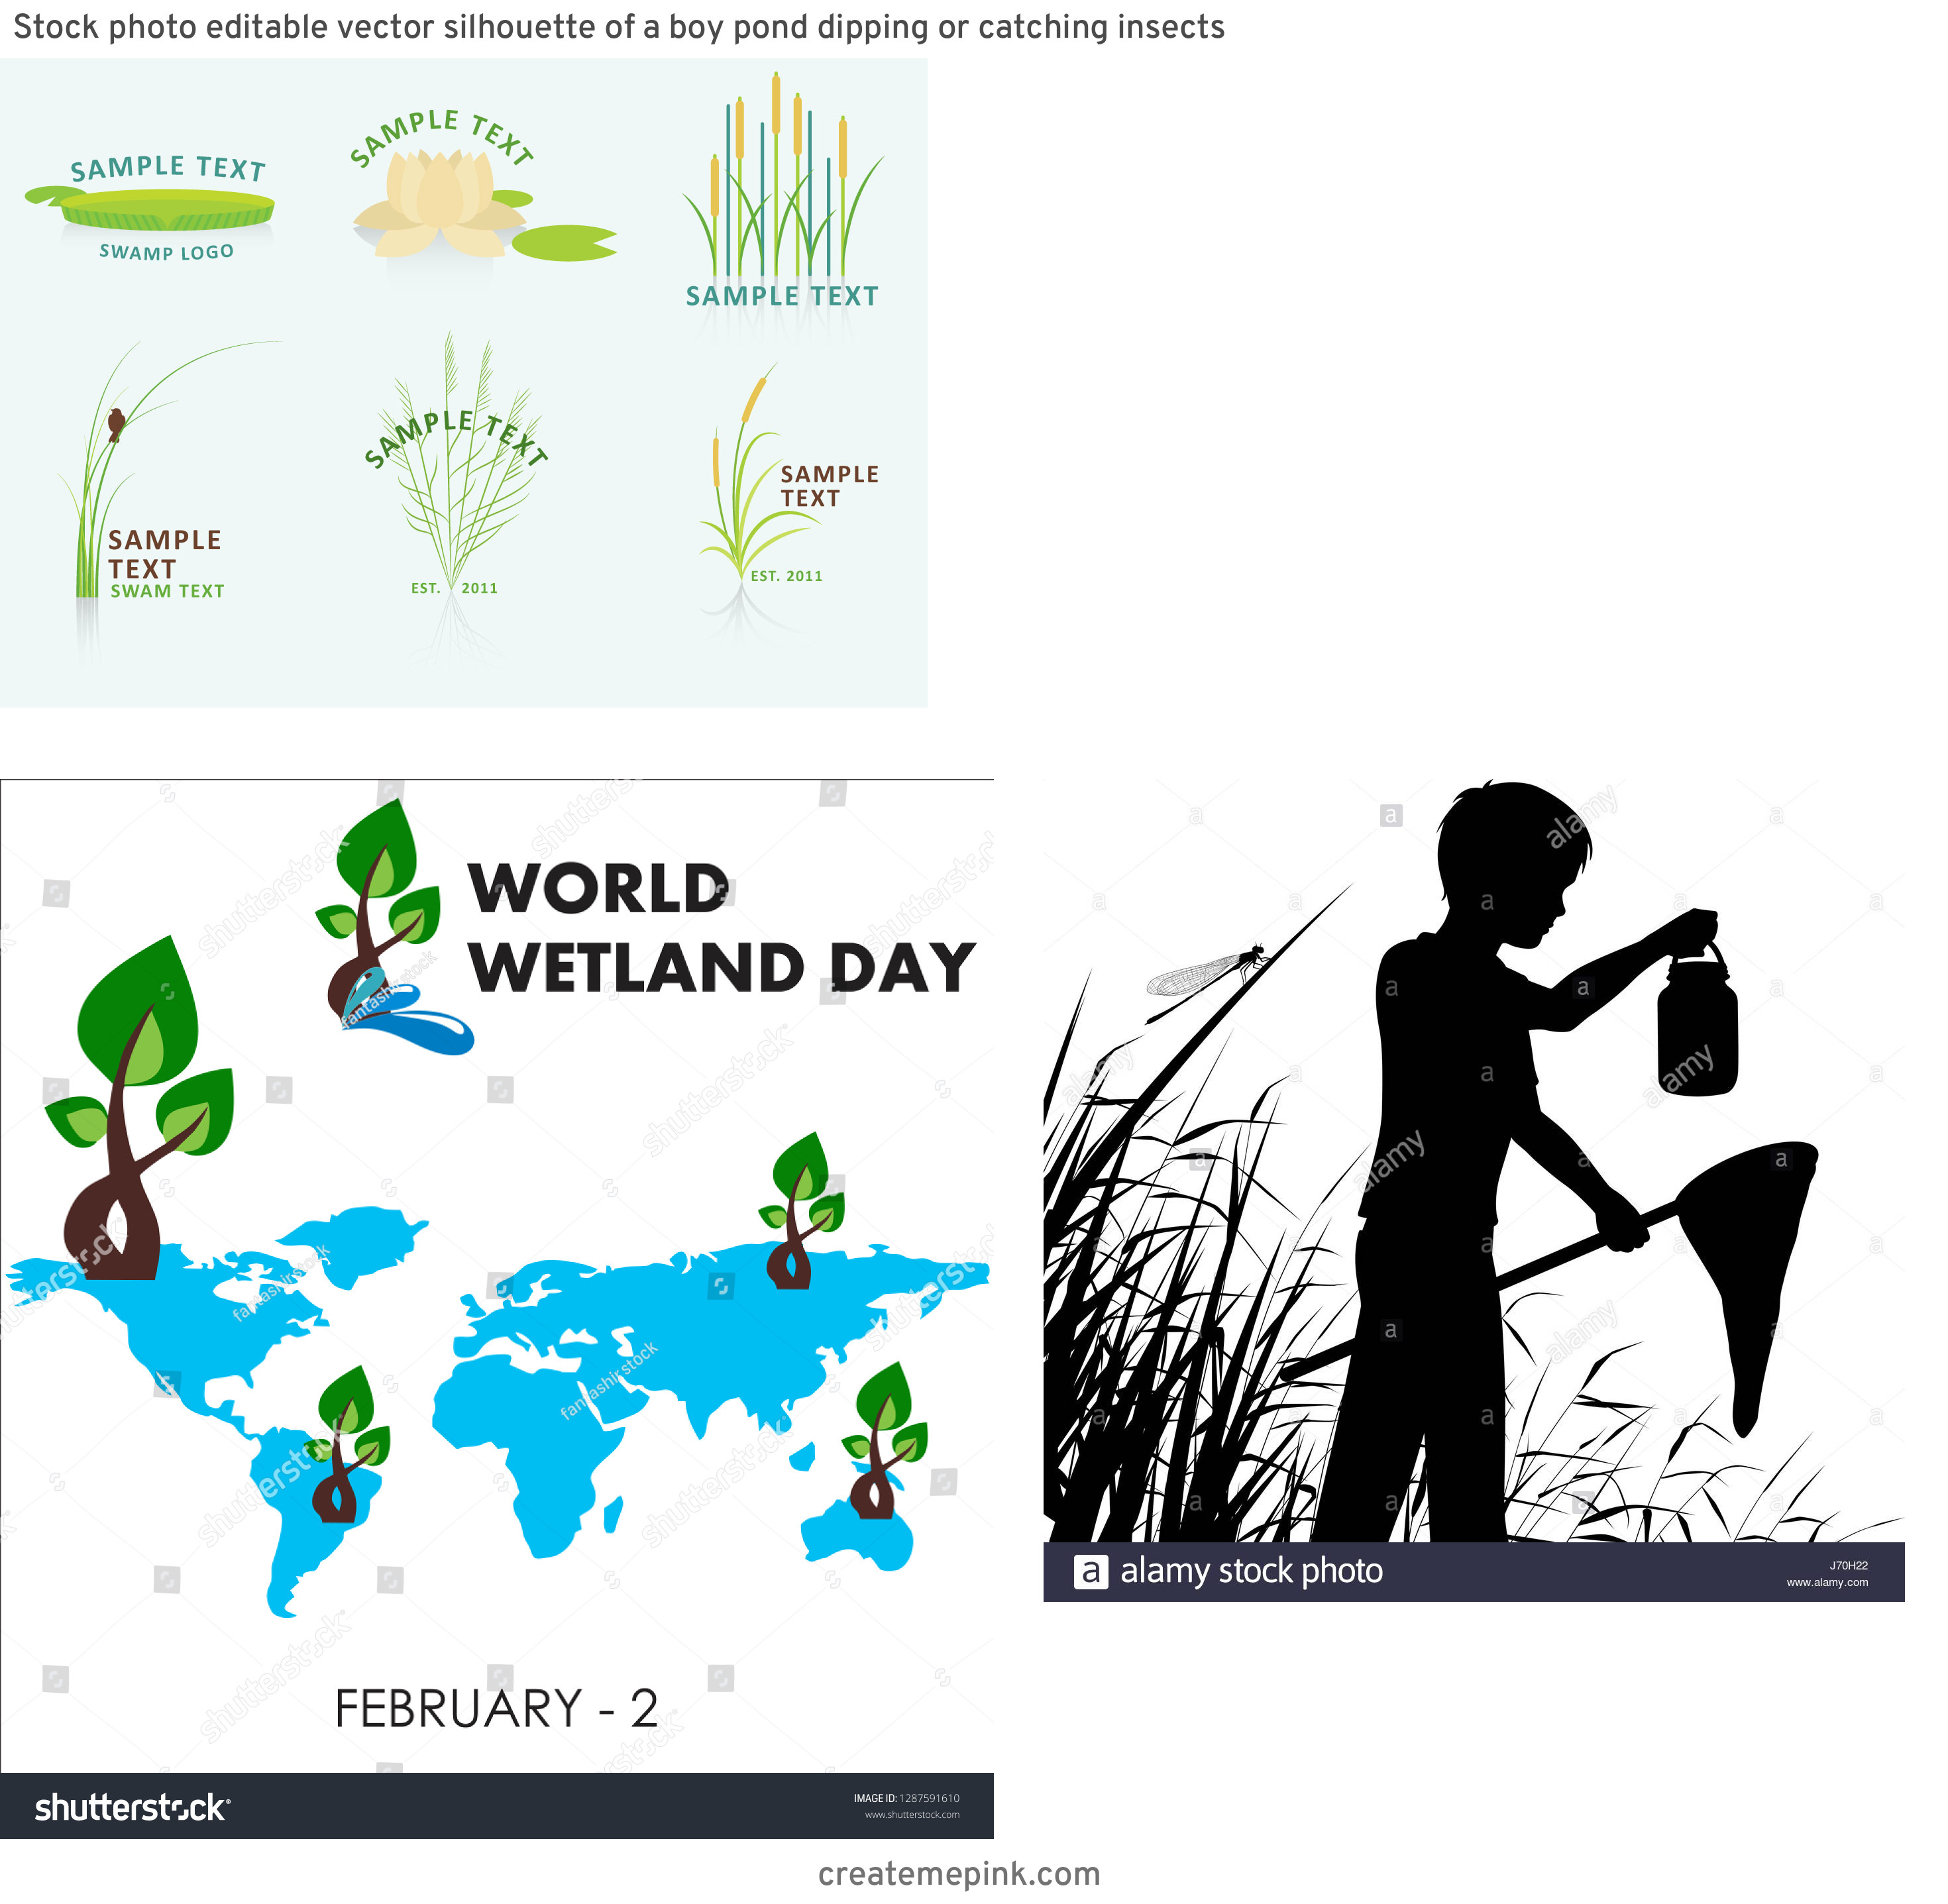 Vector Wetland: Stock Photo Editable Vector Silhouette Of A Boy Pond Dipping Or Catching Insects